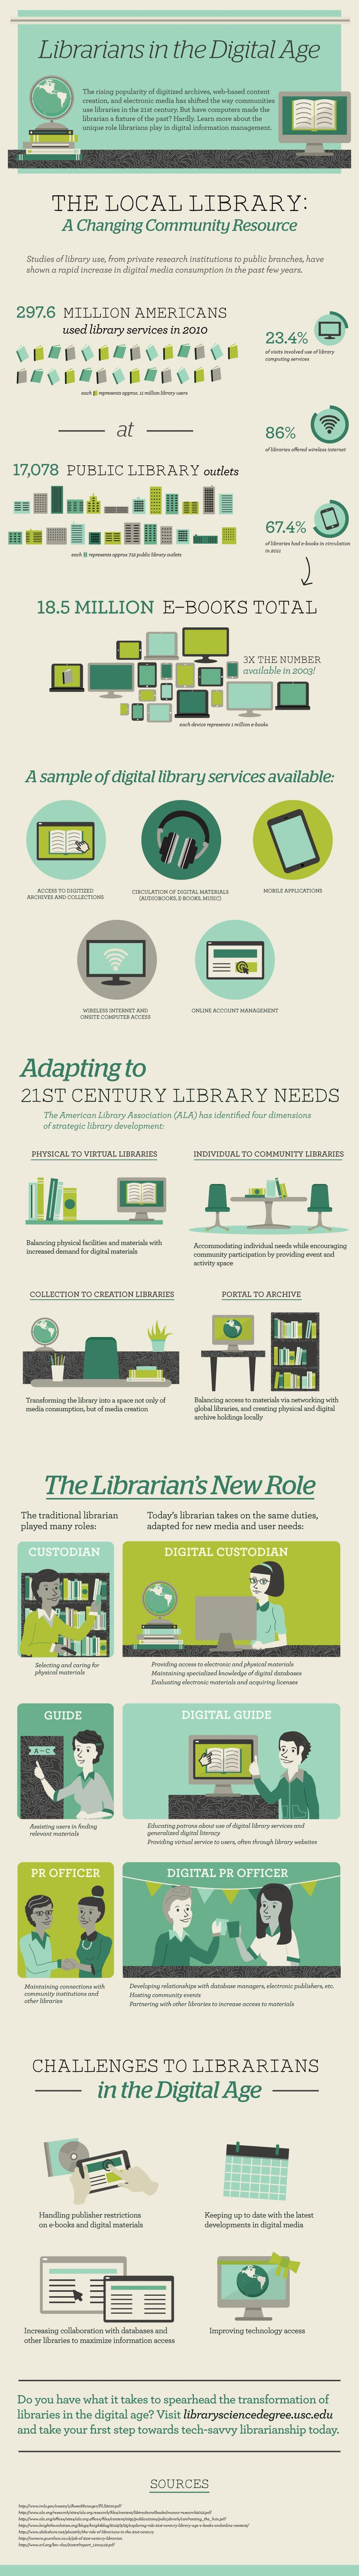 Librarians Take On New Roles in the Digital Age (INFOGRAPHIC) | Frankie Rendón